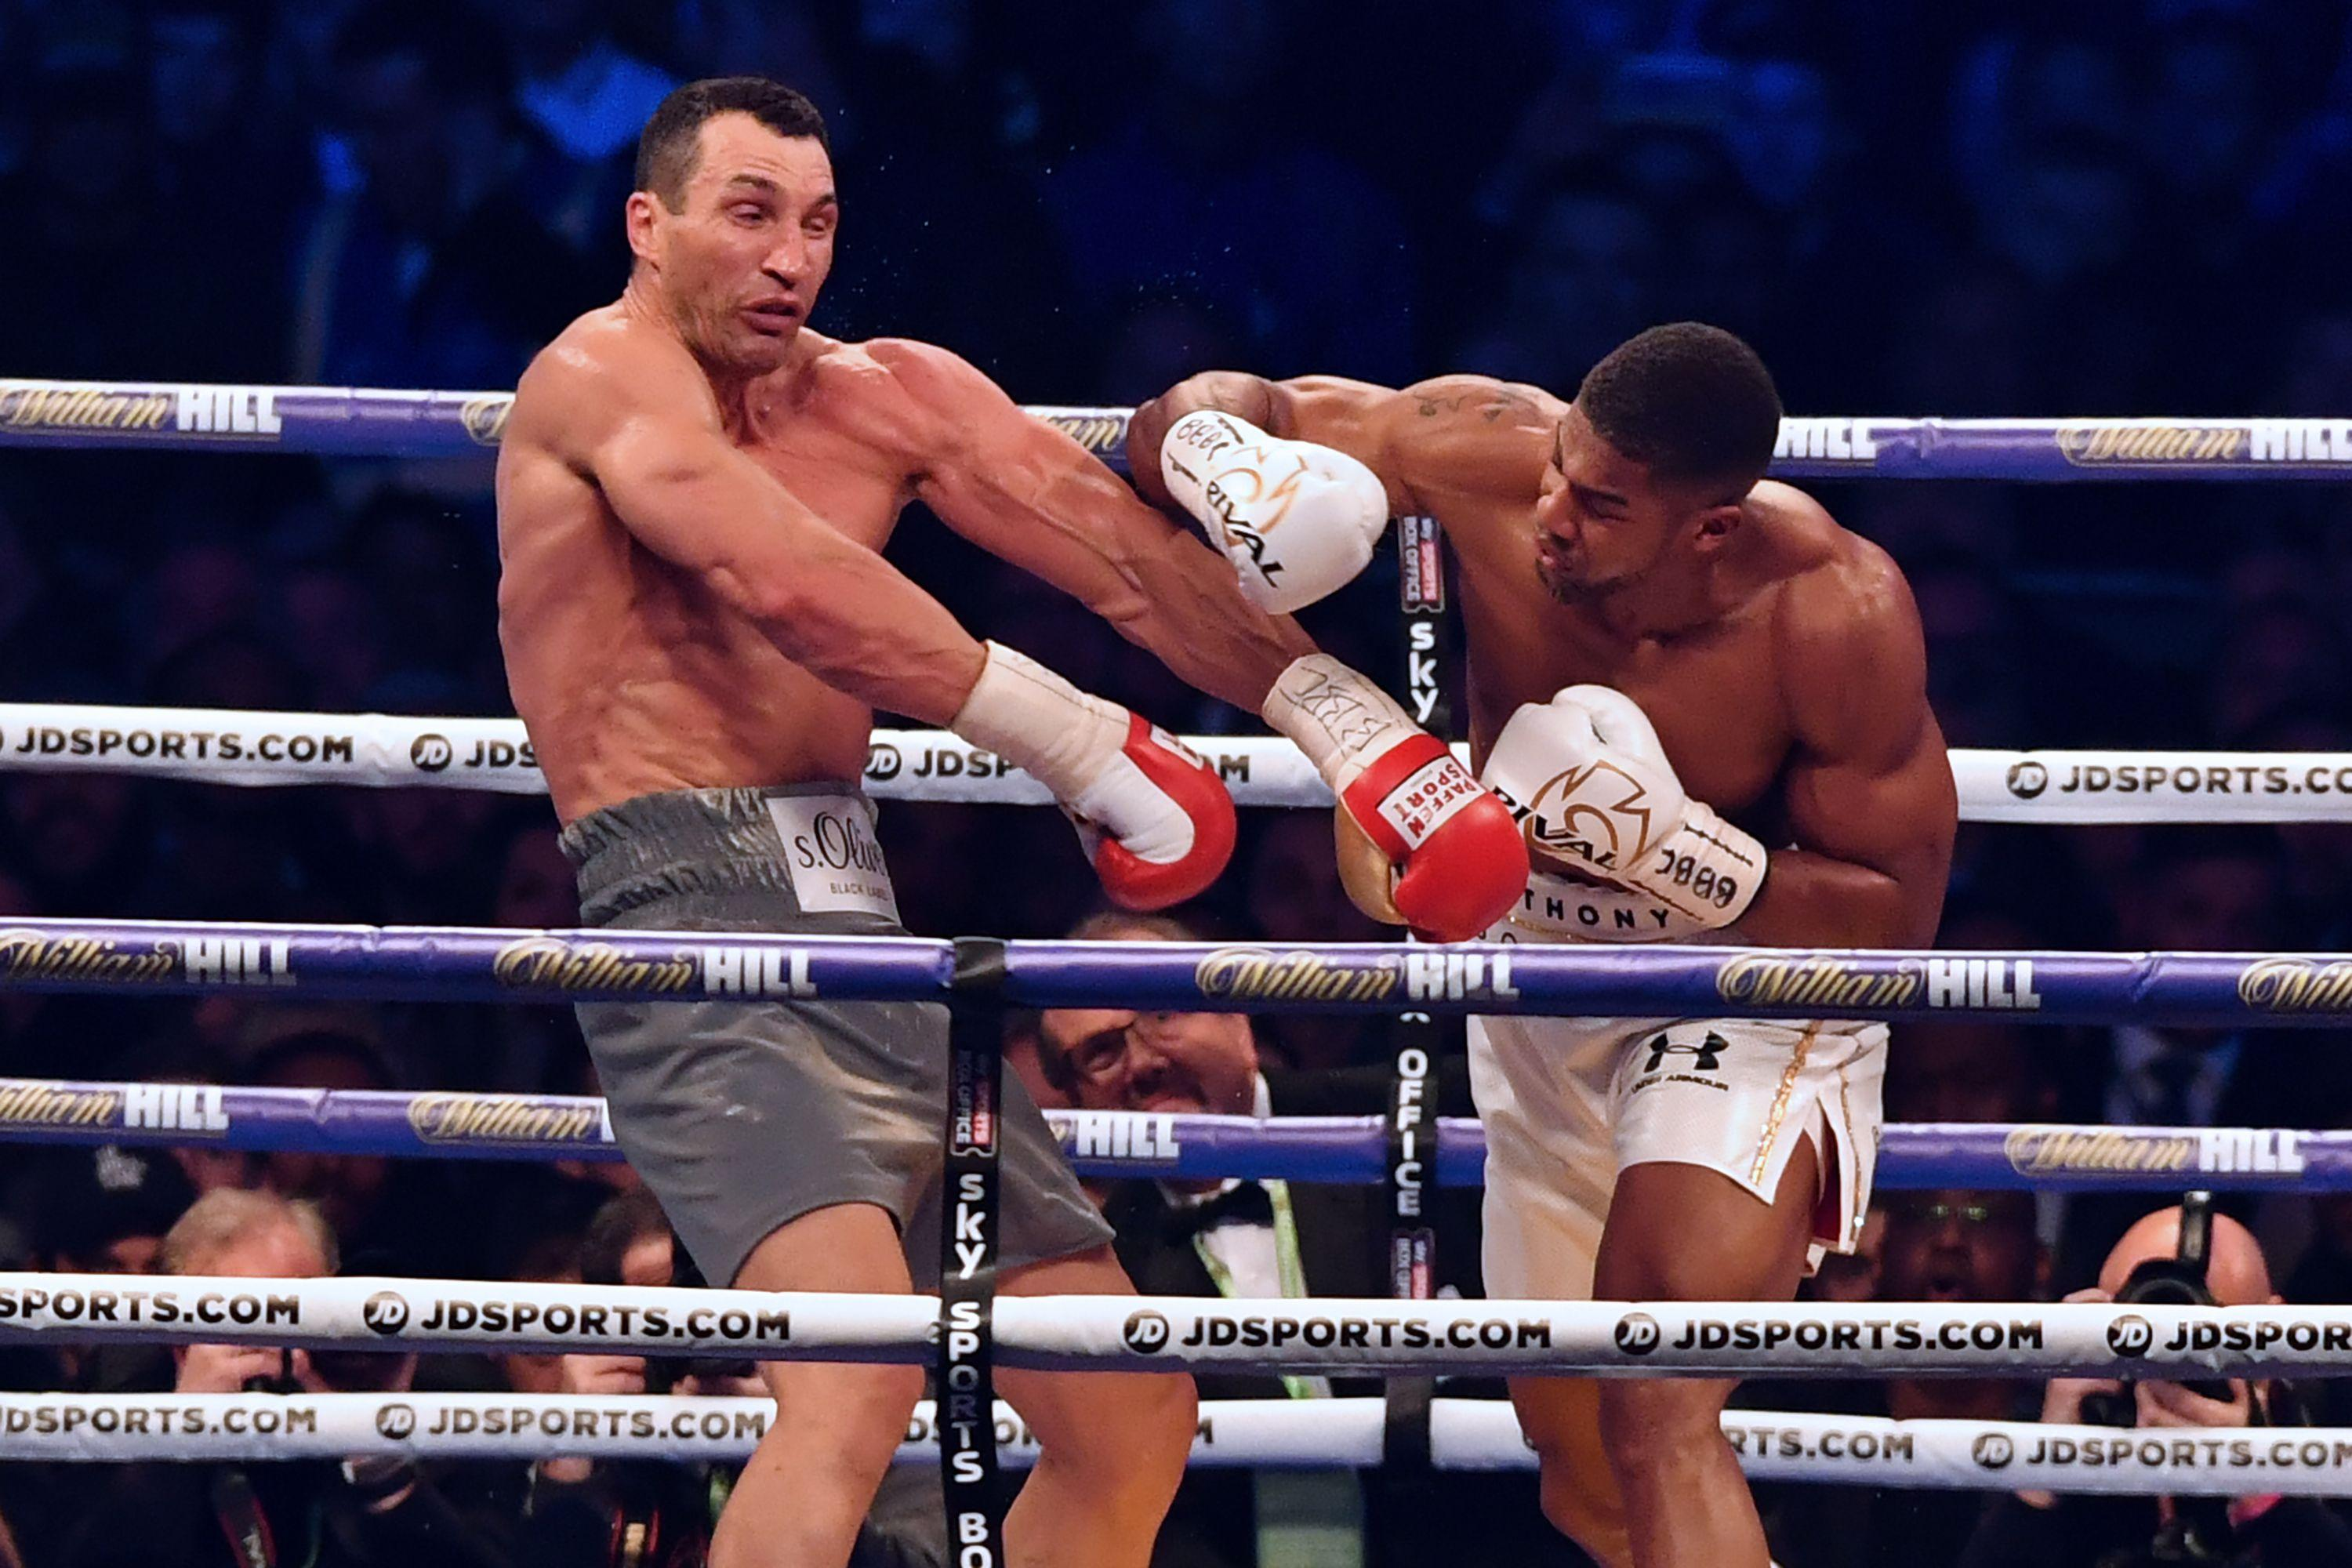 Wladimir Klitschko was beaten by Anthony Joshua at Wembley in a brilliant fight in 2017